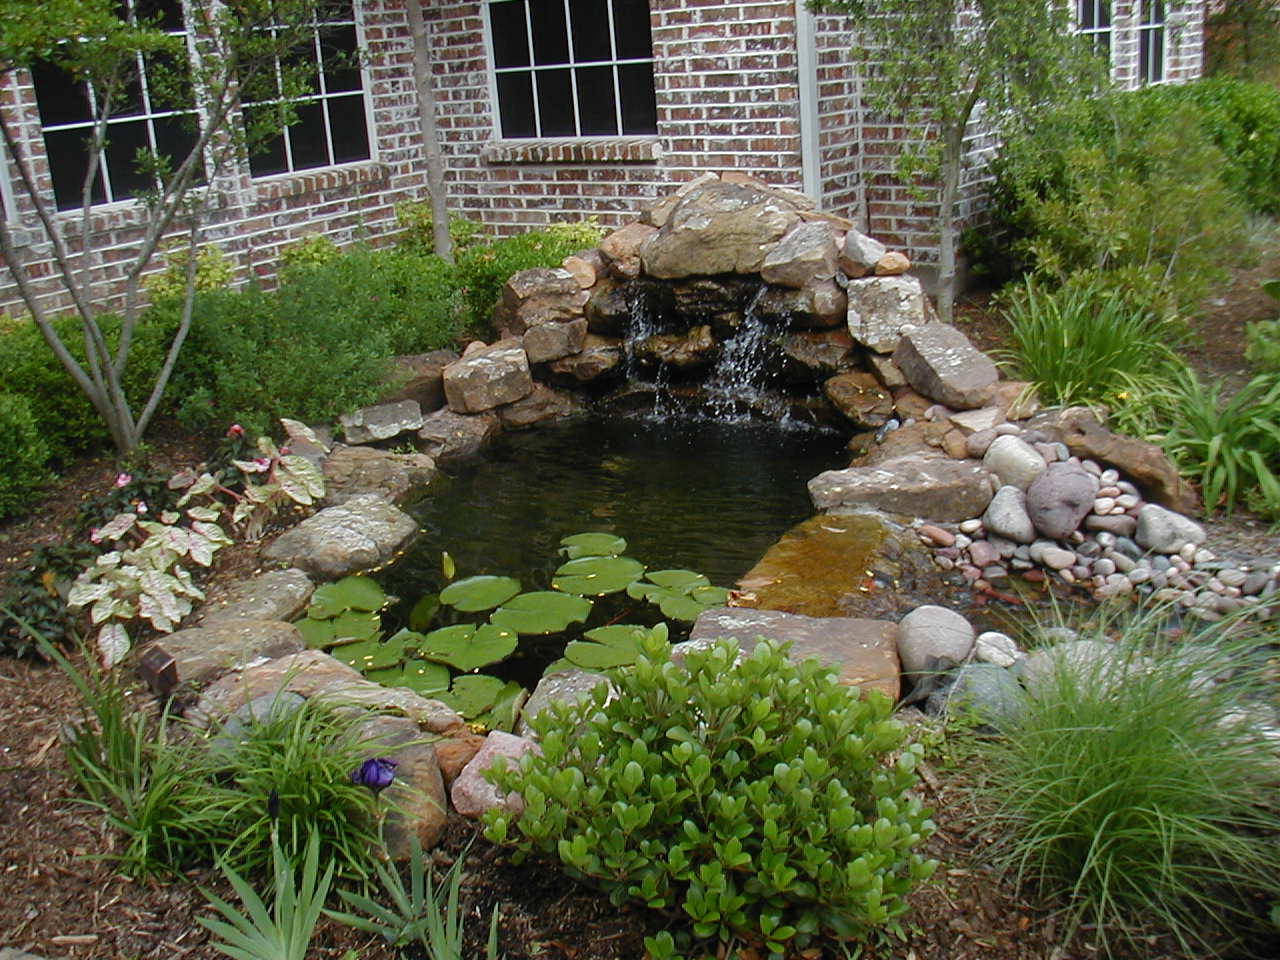 Xterieurdesign about us Design pond